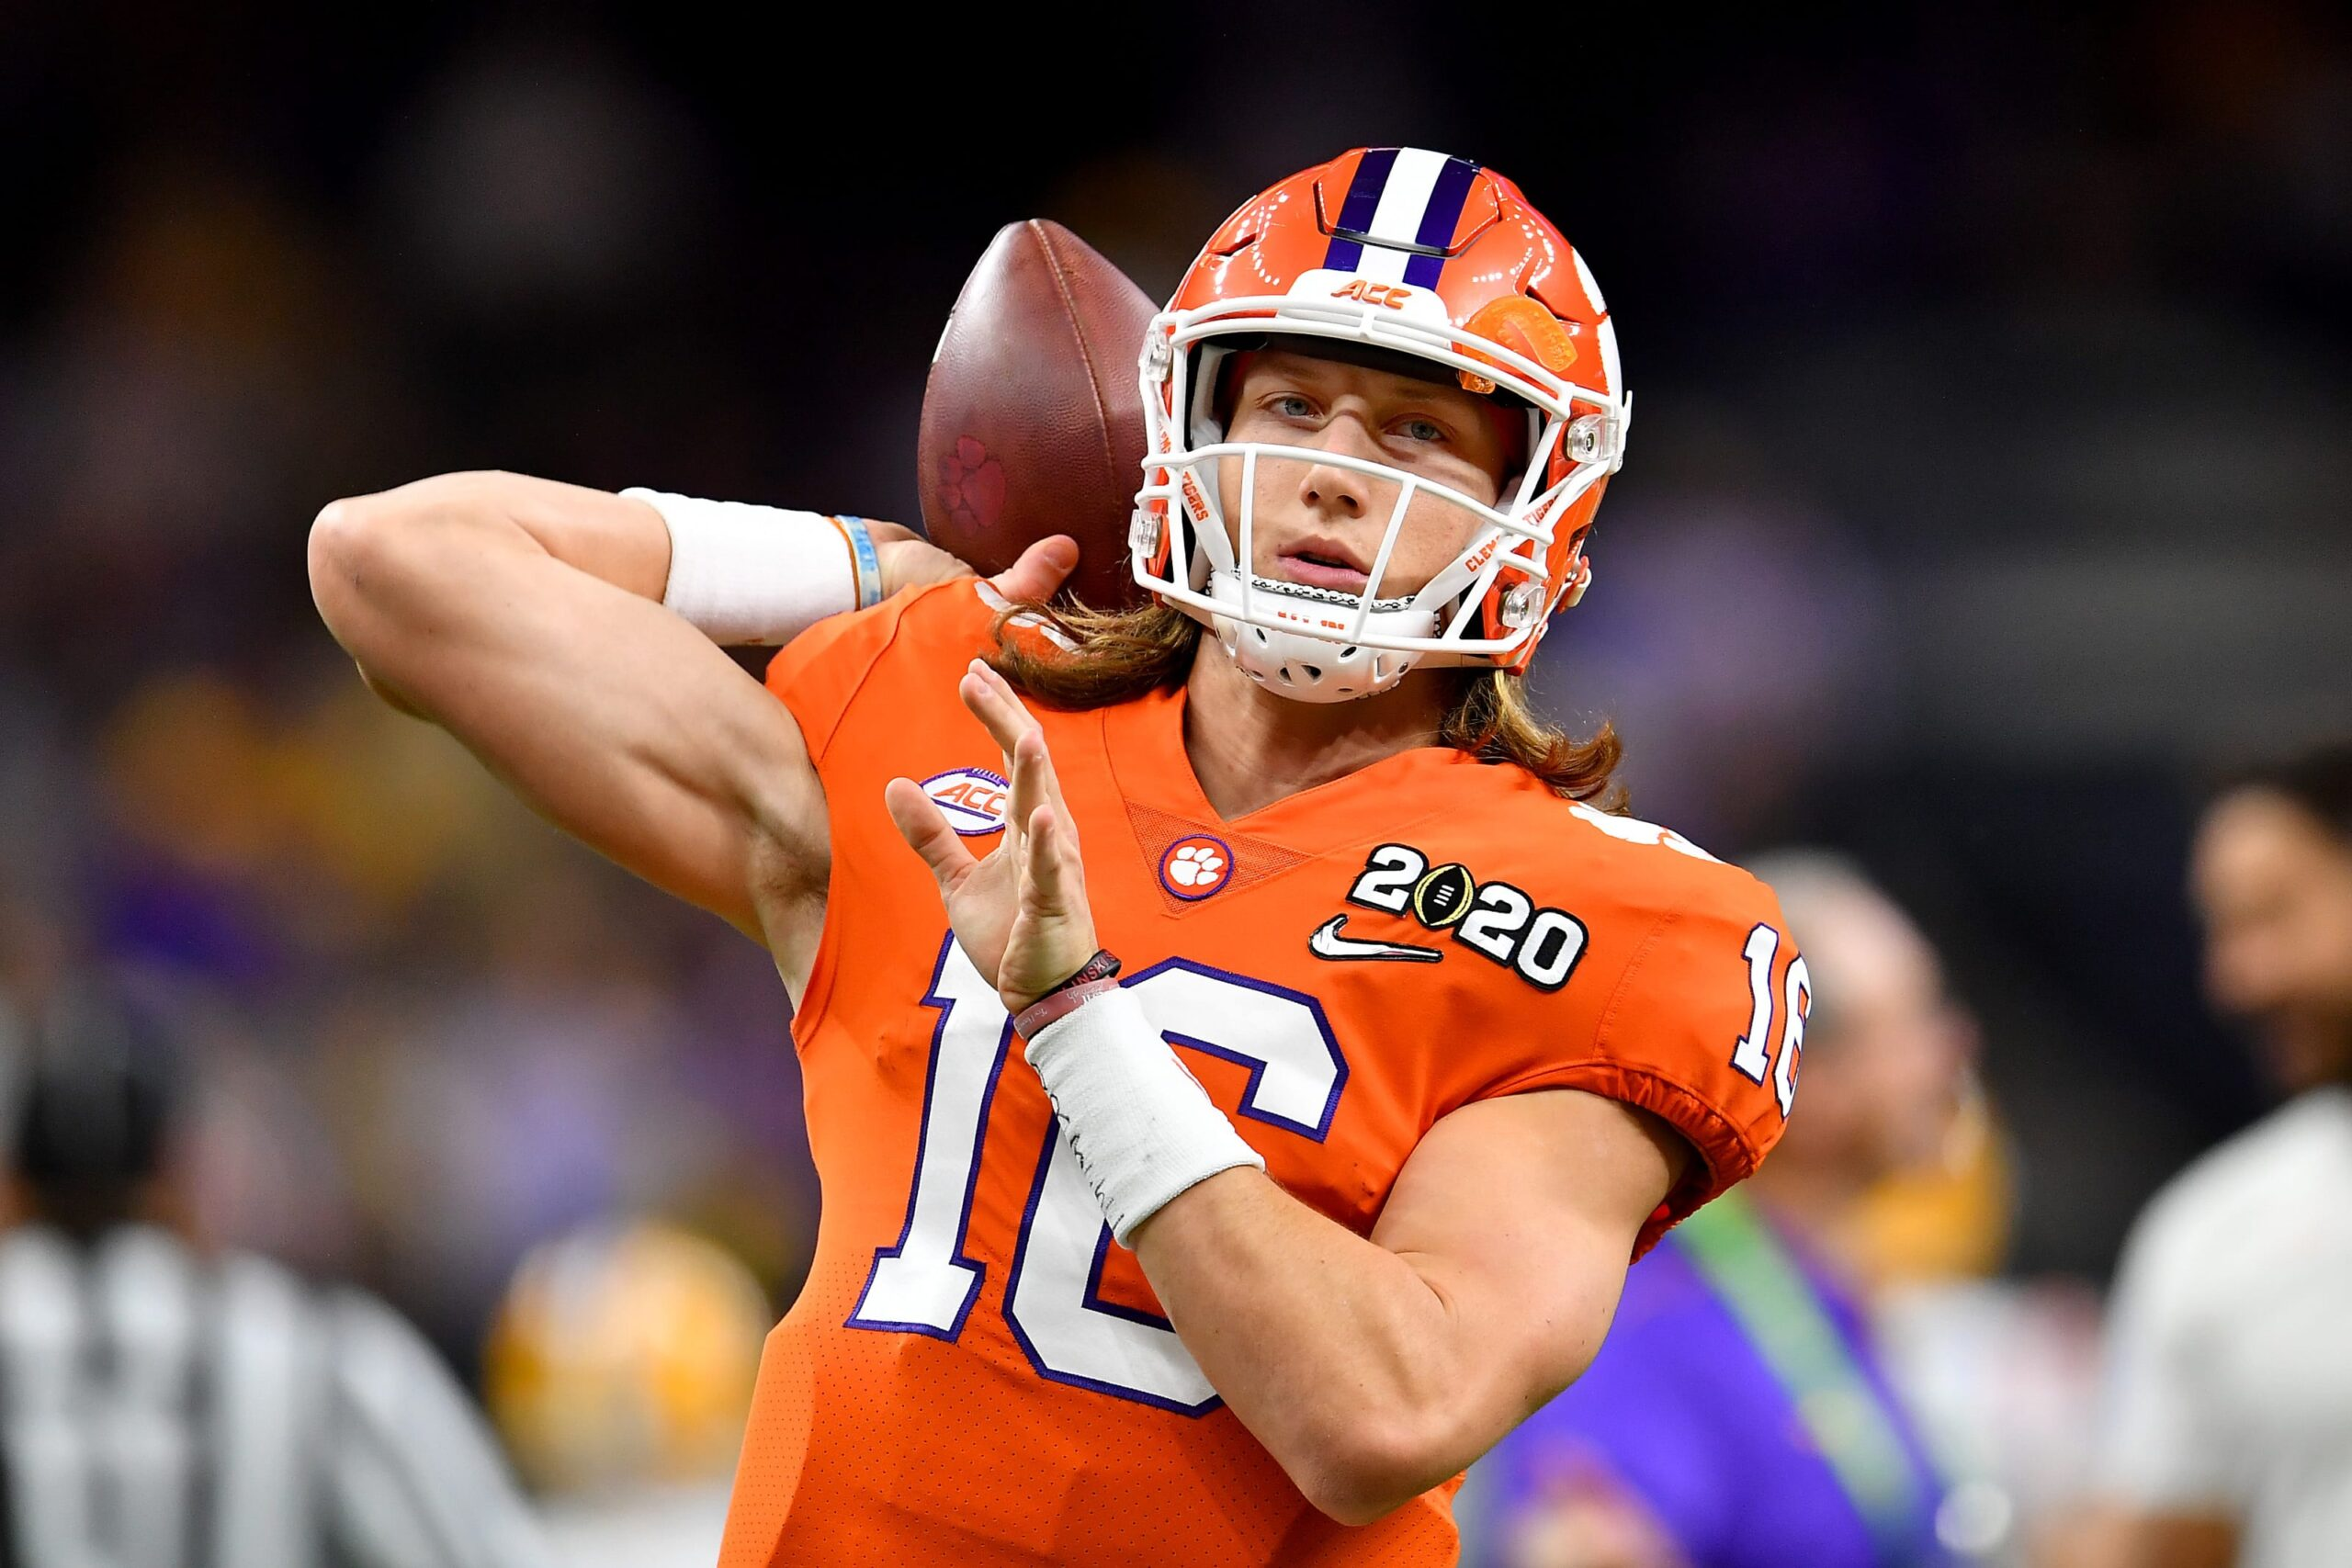 QB Trevor Lawrence agree to sign 4-year rookie contract with Jacksonville Jaguars